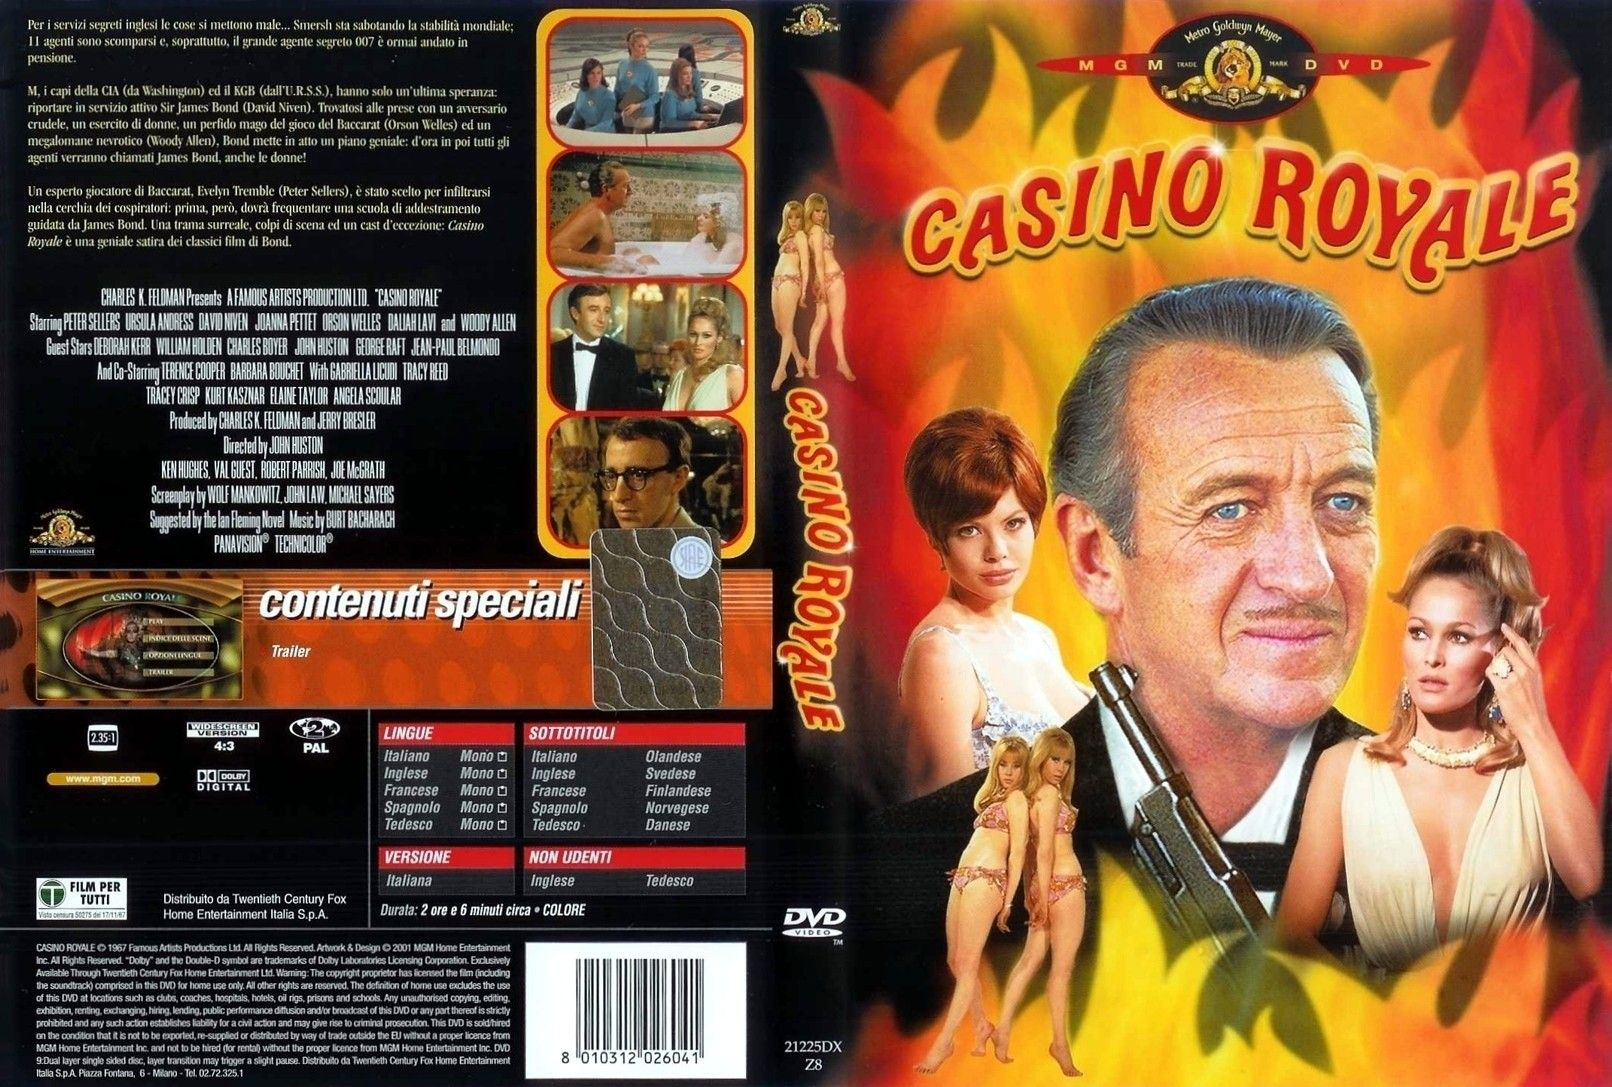 casino royale 2006 online free play book of ra